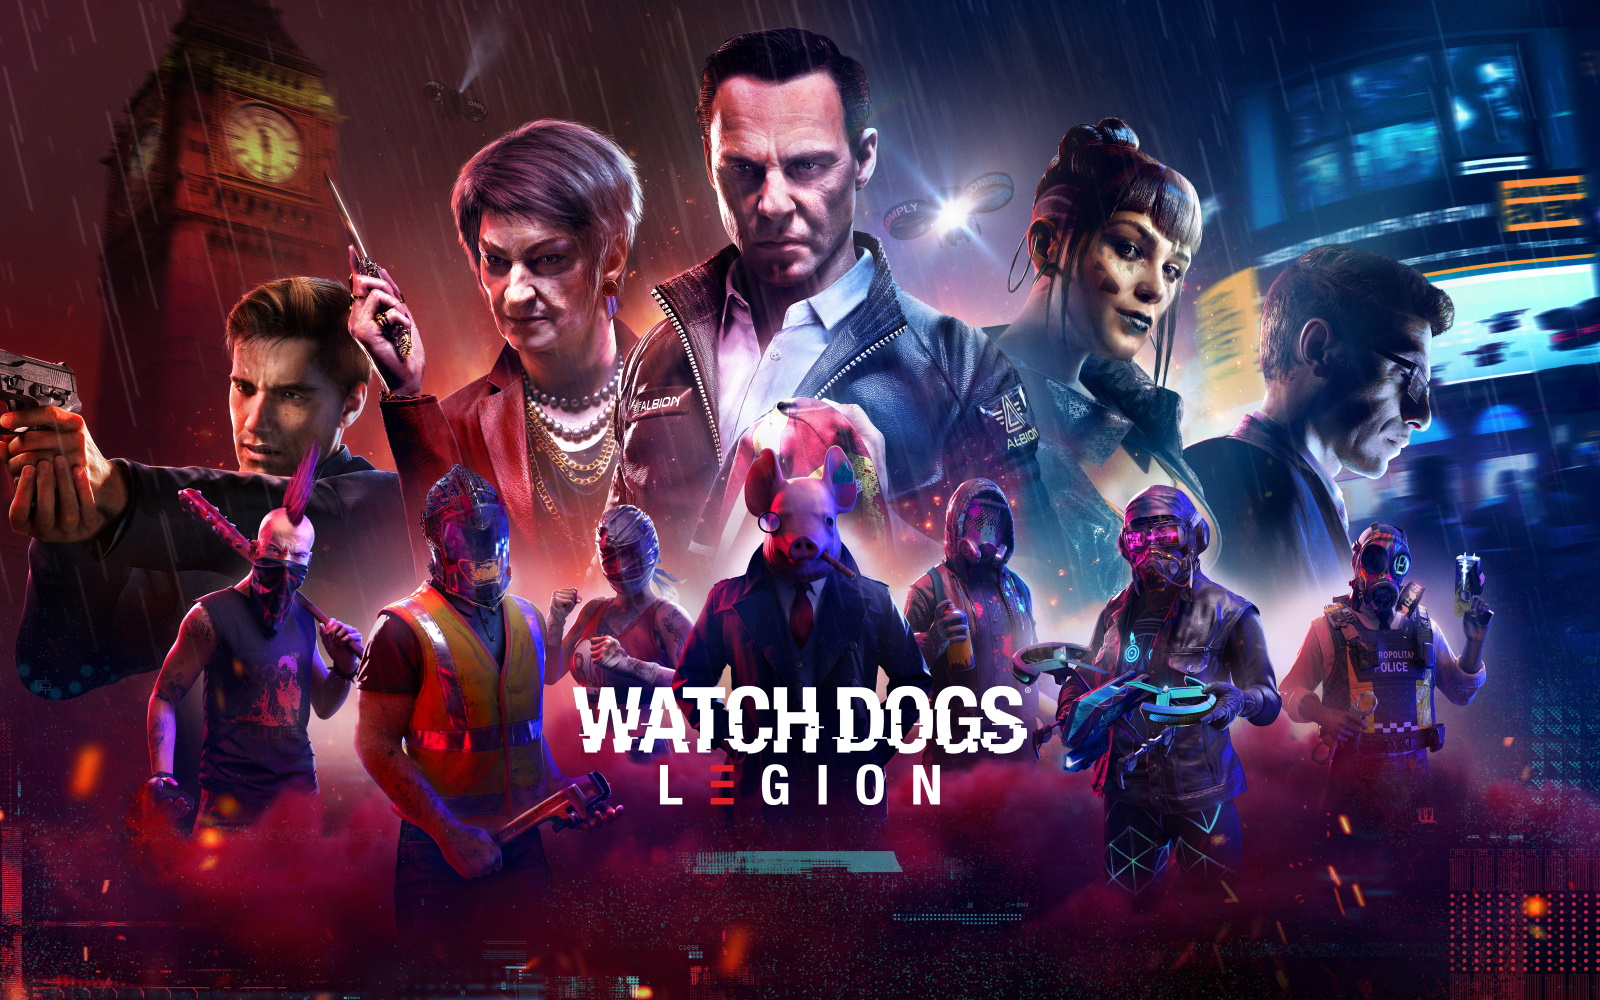 Watch Dog: Legion Gets An October 2020 Release Date